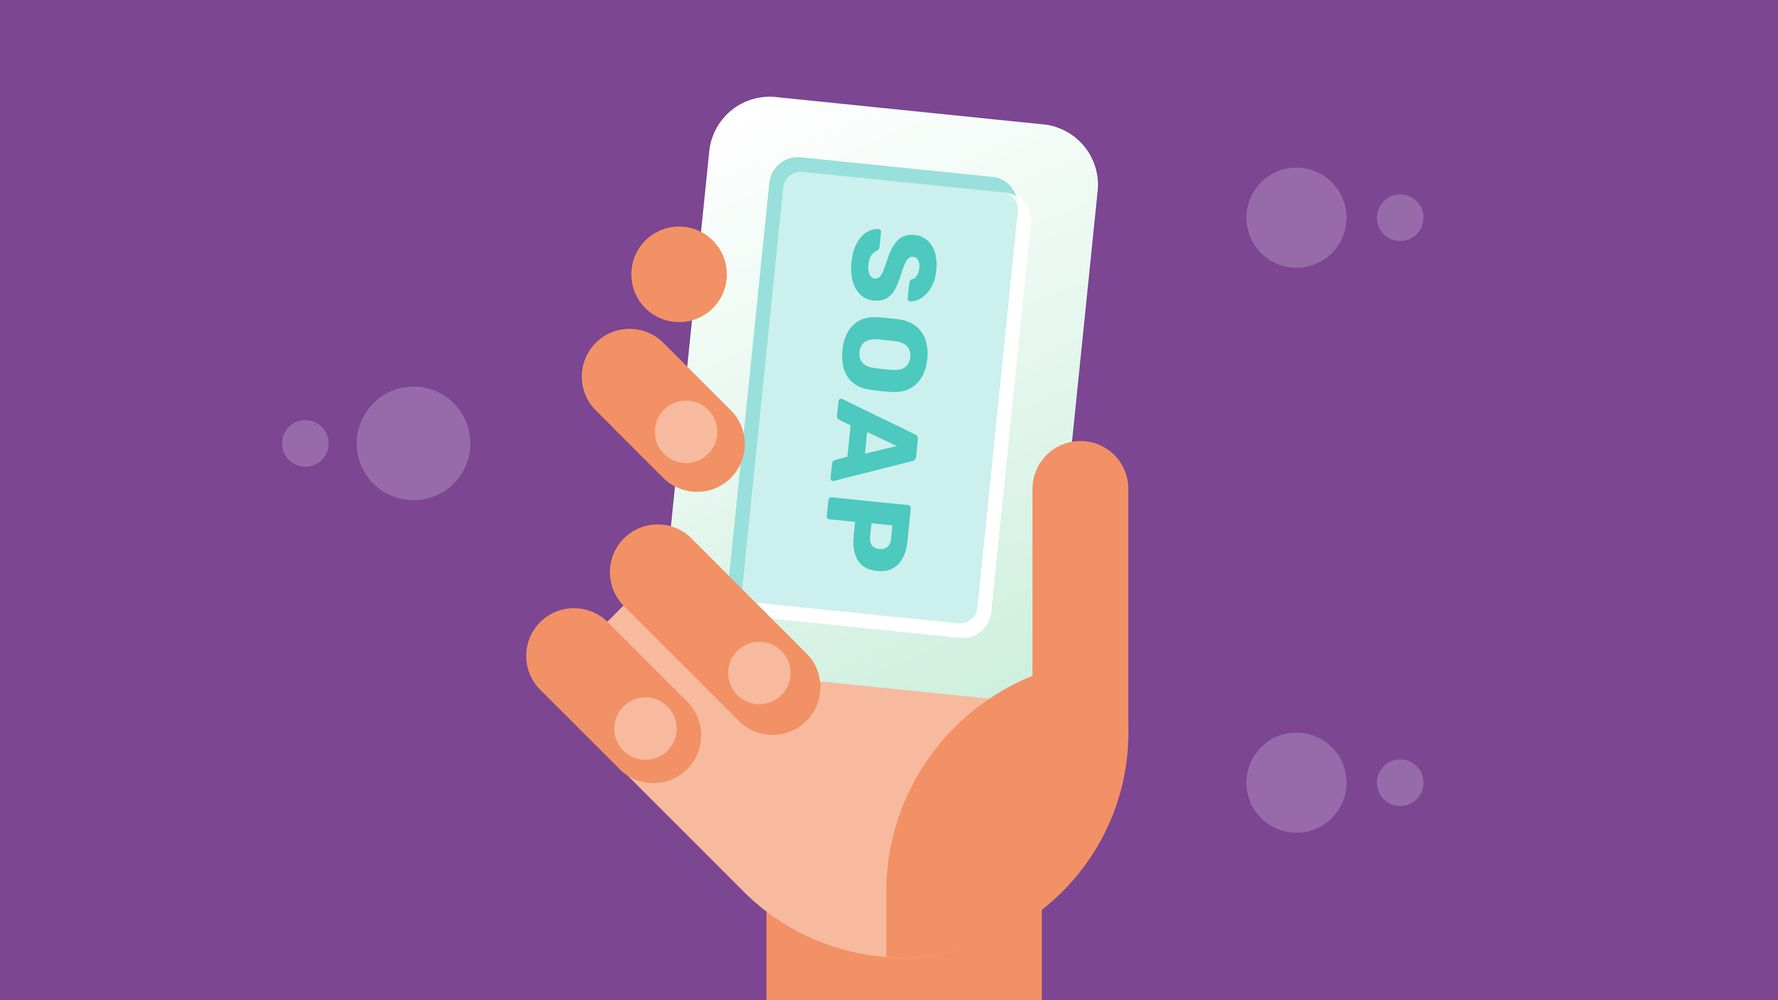 Is Bar Soap Safe To Use During The Coronavirus Pandemic?